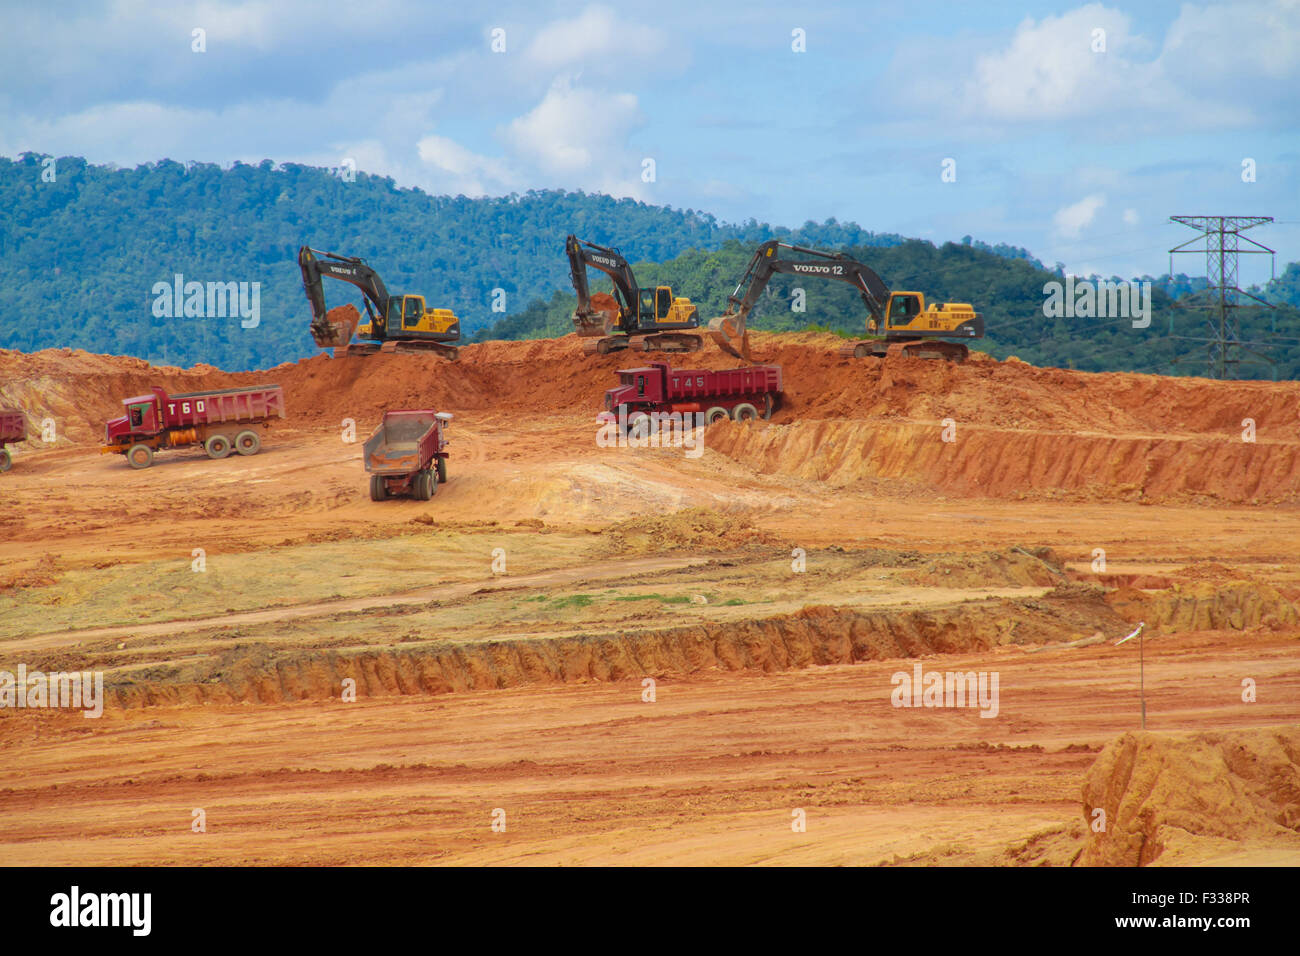 Earth movers and trucks at work. - Stock Image